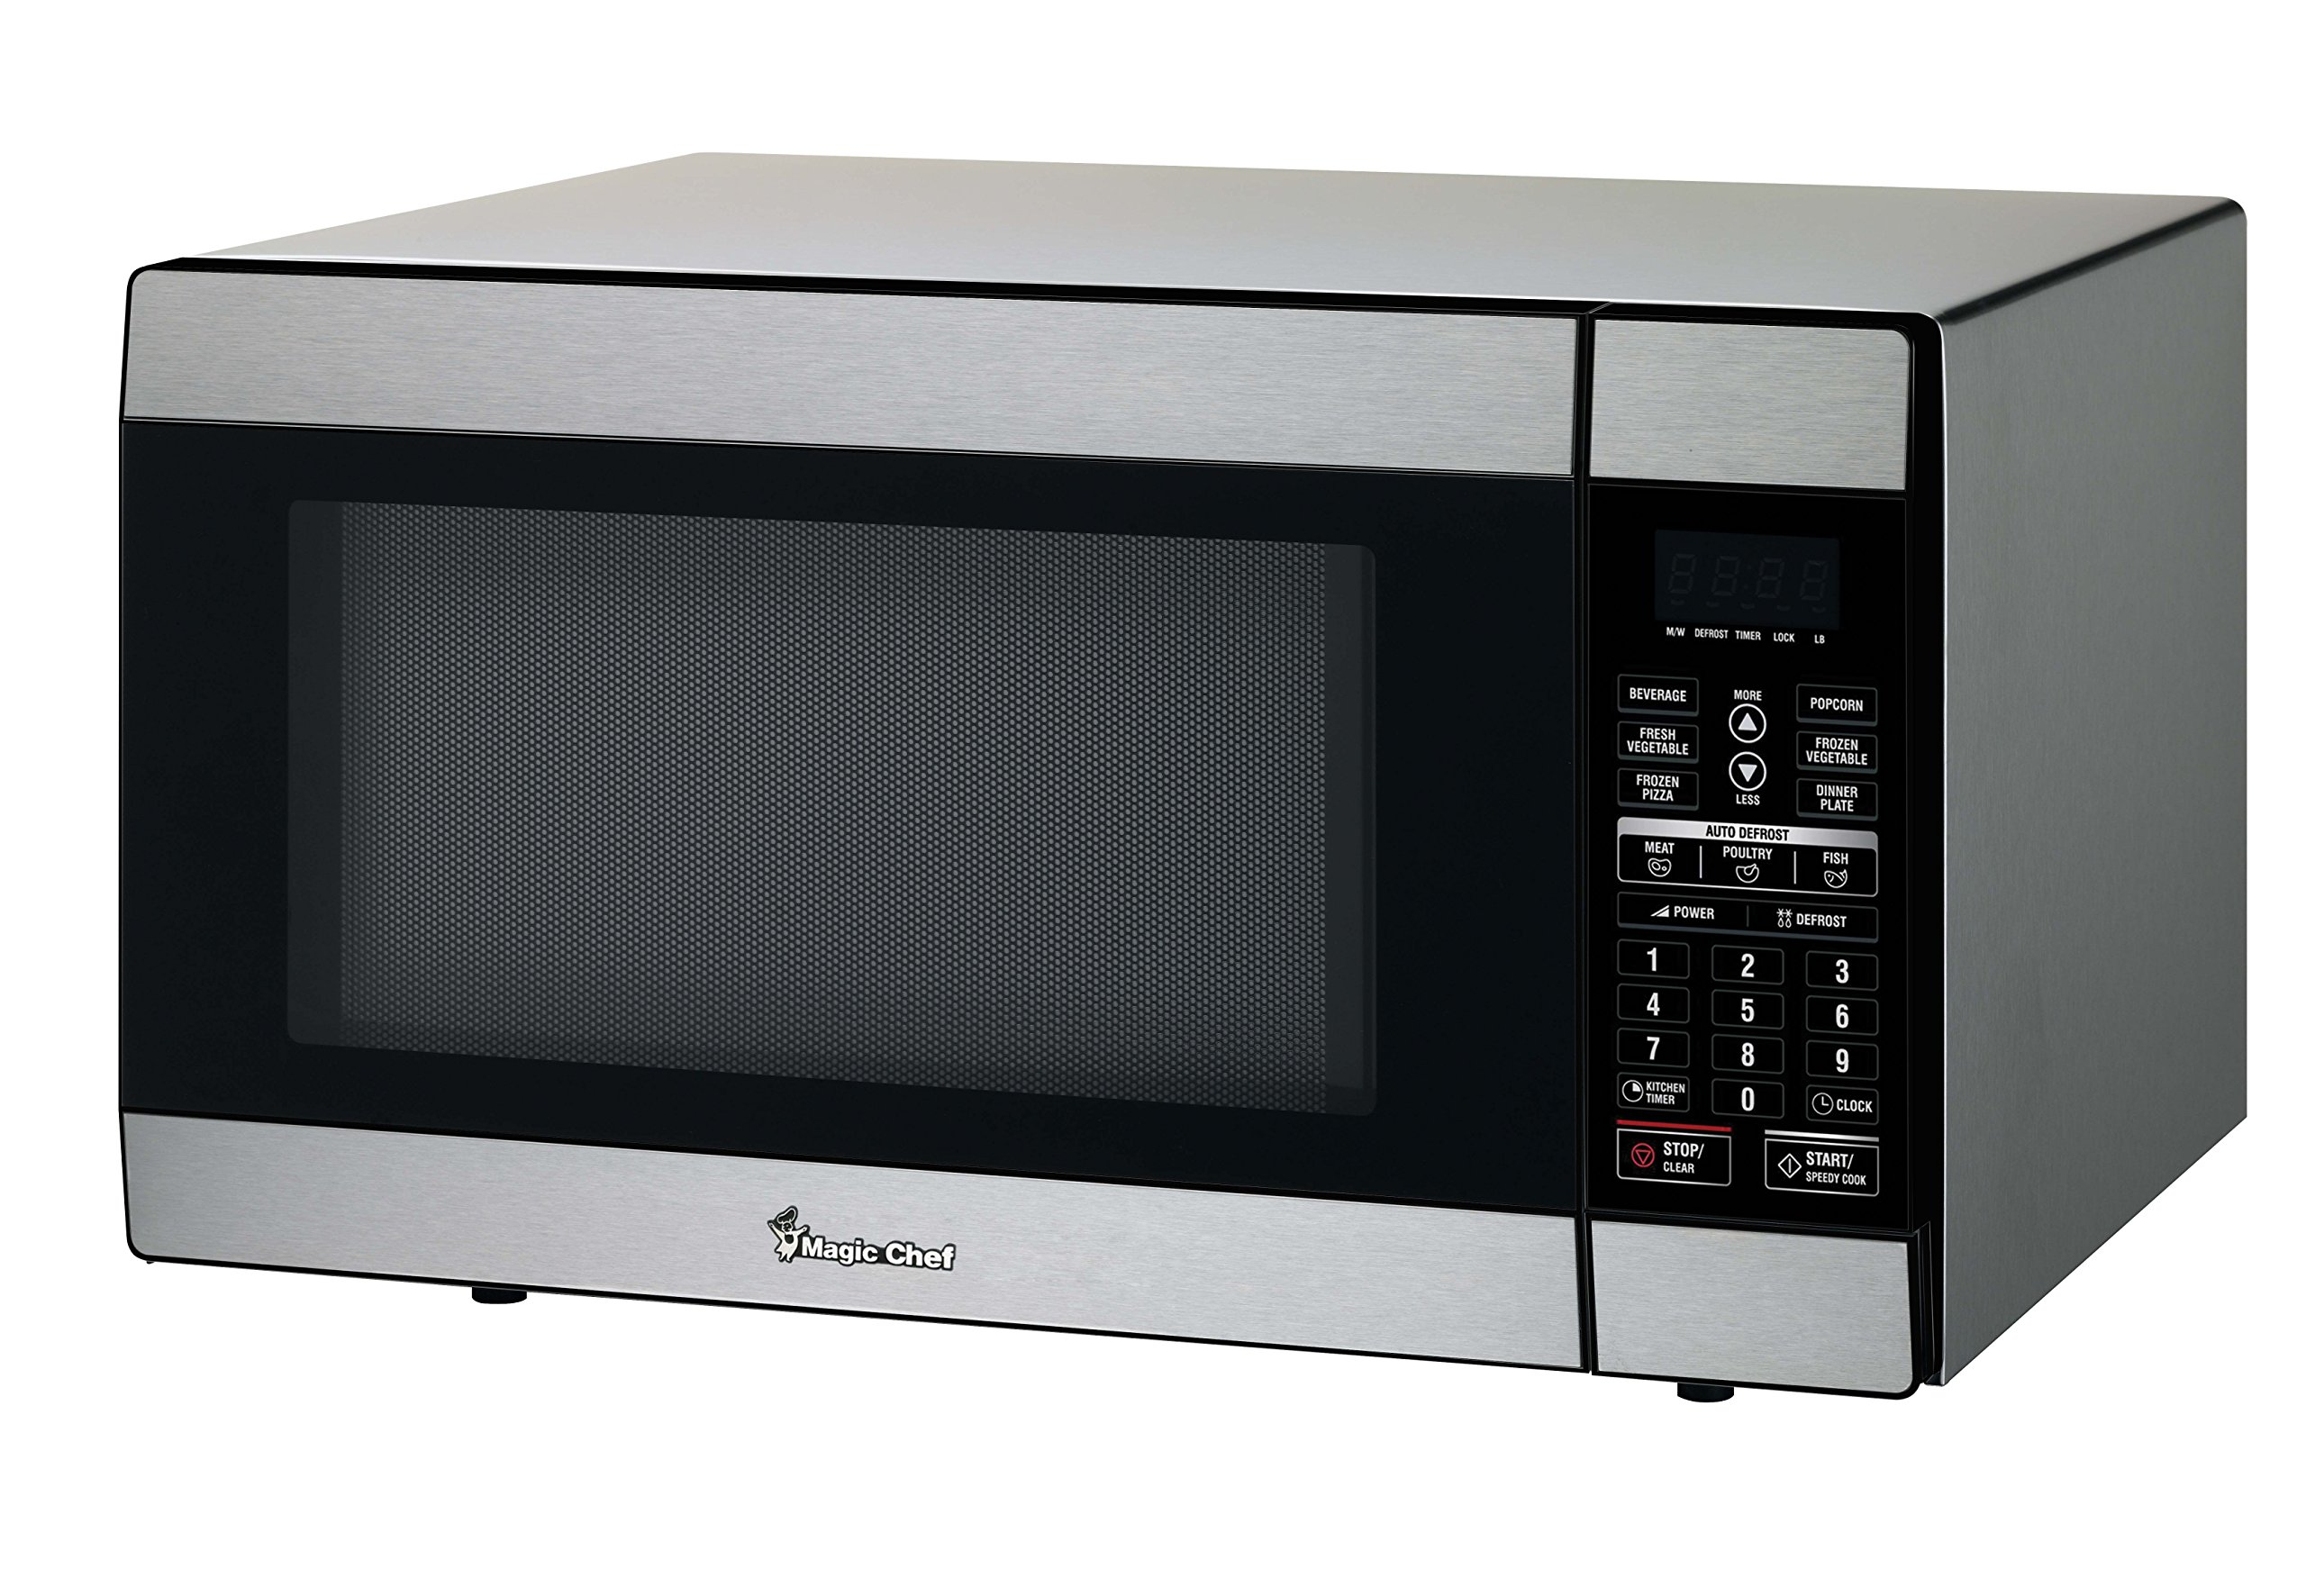 Magic Chef MCD1811ST 1.8 Cu. Ft. 1100W Countertop Microwave Oven in Stainless Steel, Silver by Magic Chef